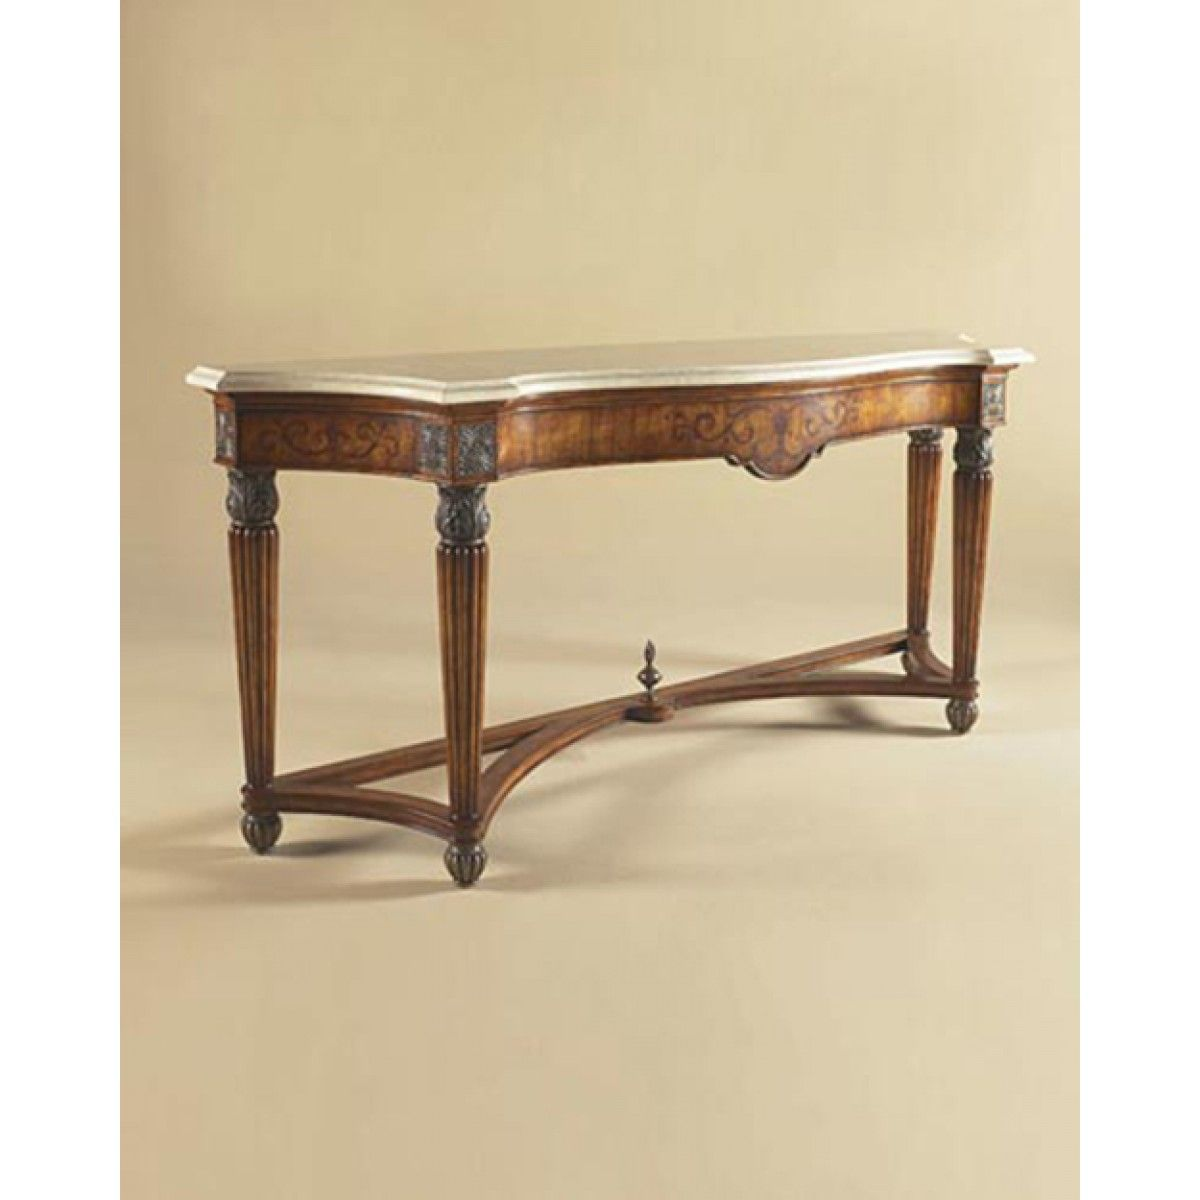 Maitland smith antique lido finished console table primavera maitland smith antique lido finished console table primavera veneers mactan stone top geotapseo Gallery